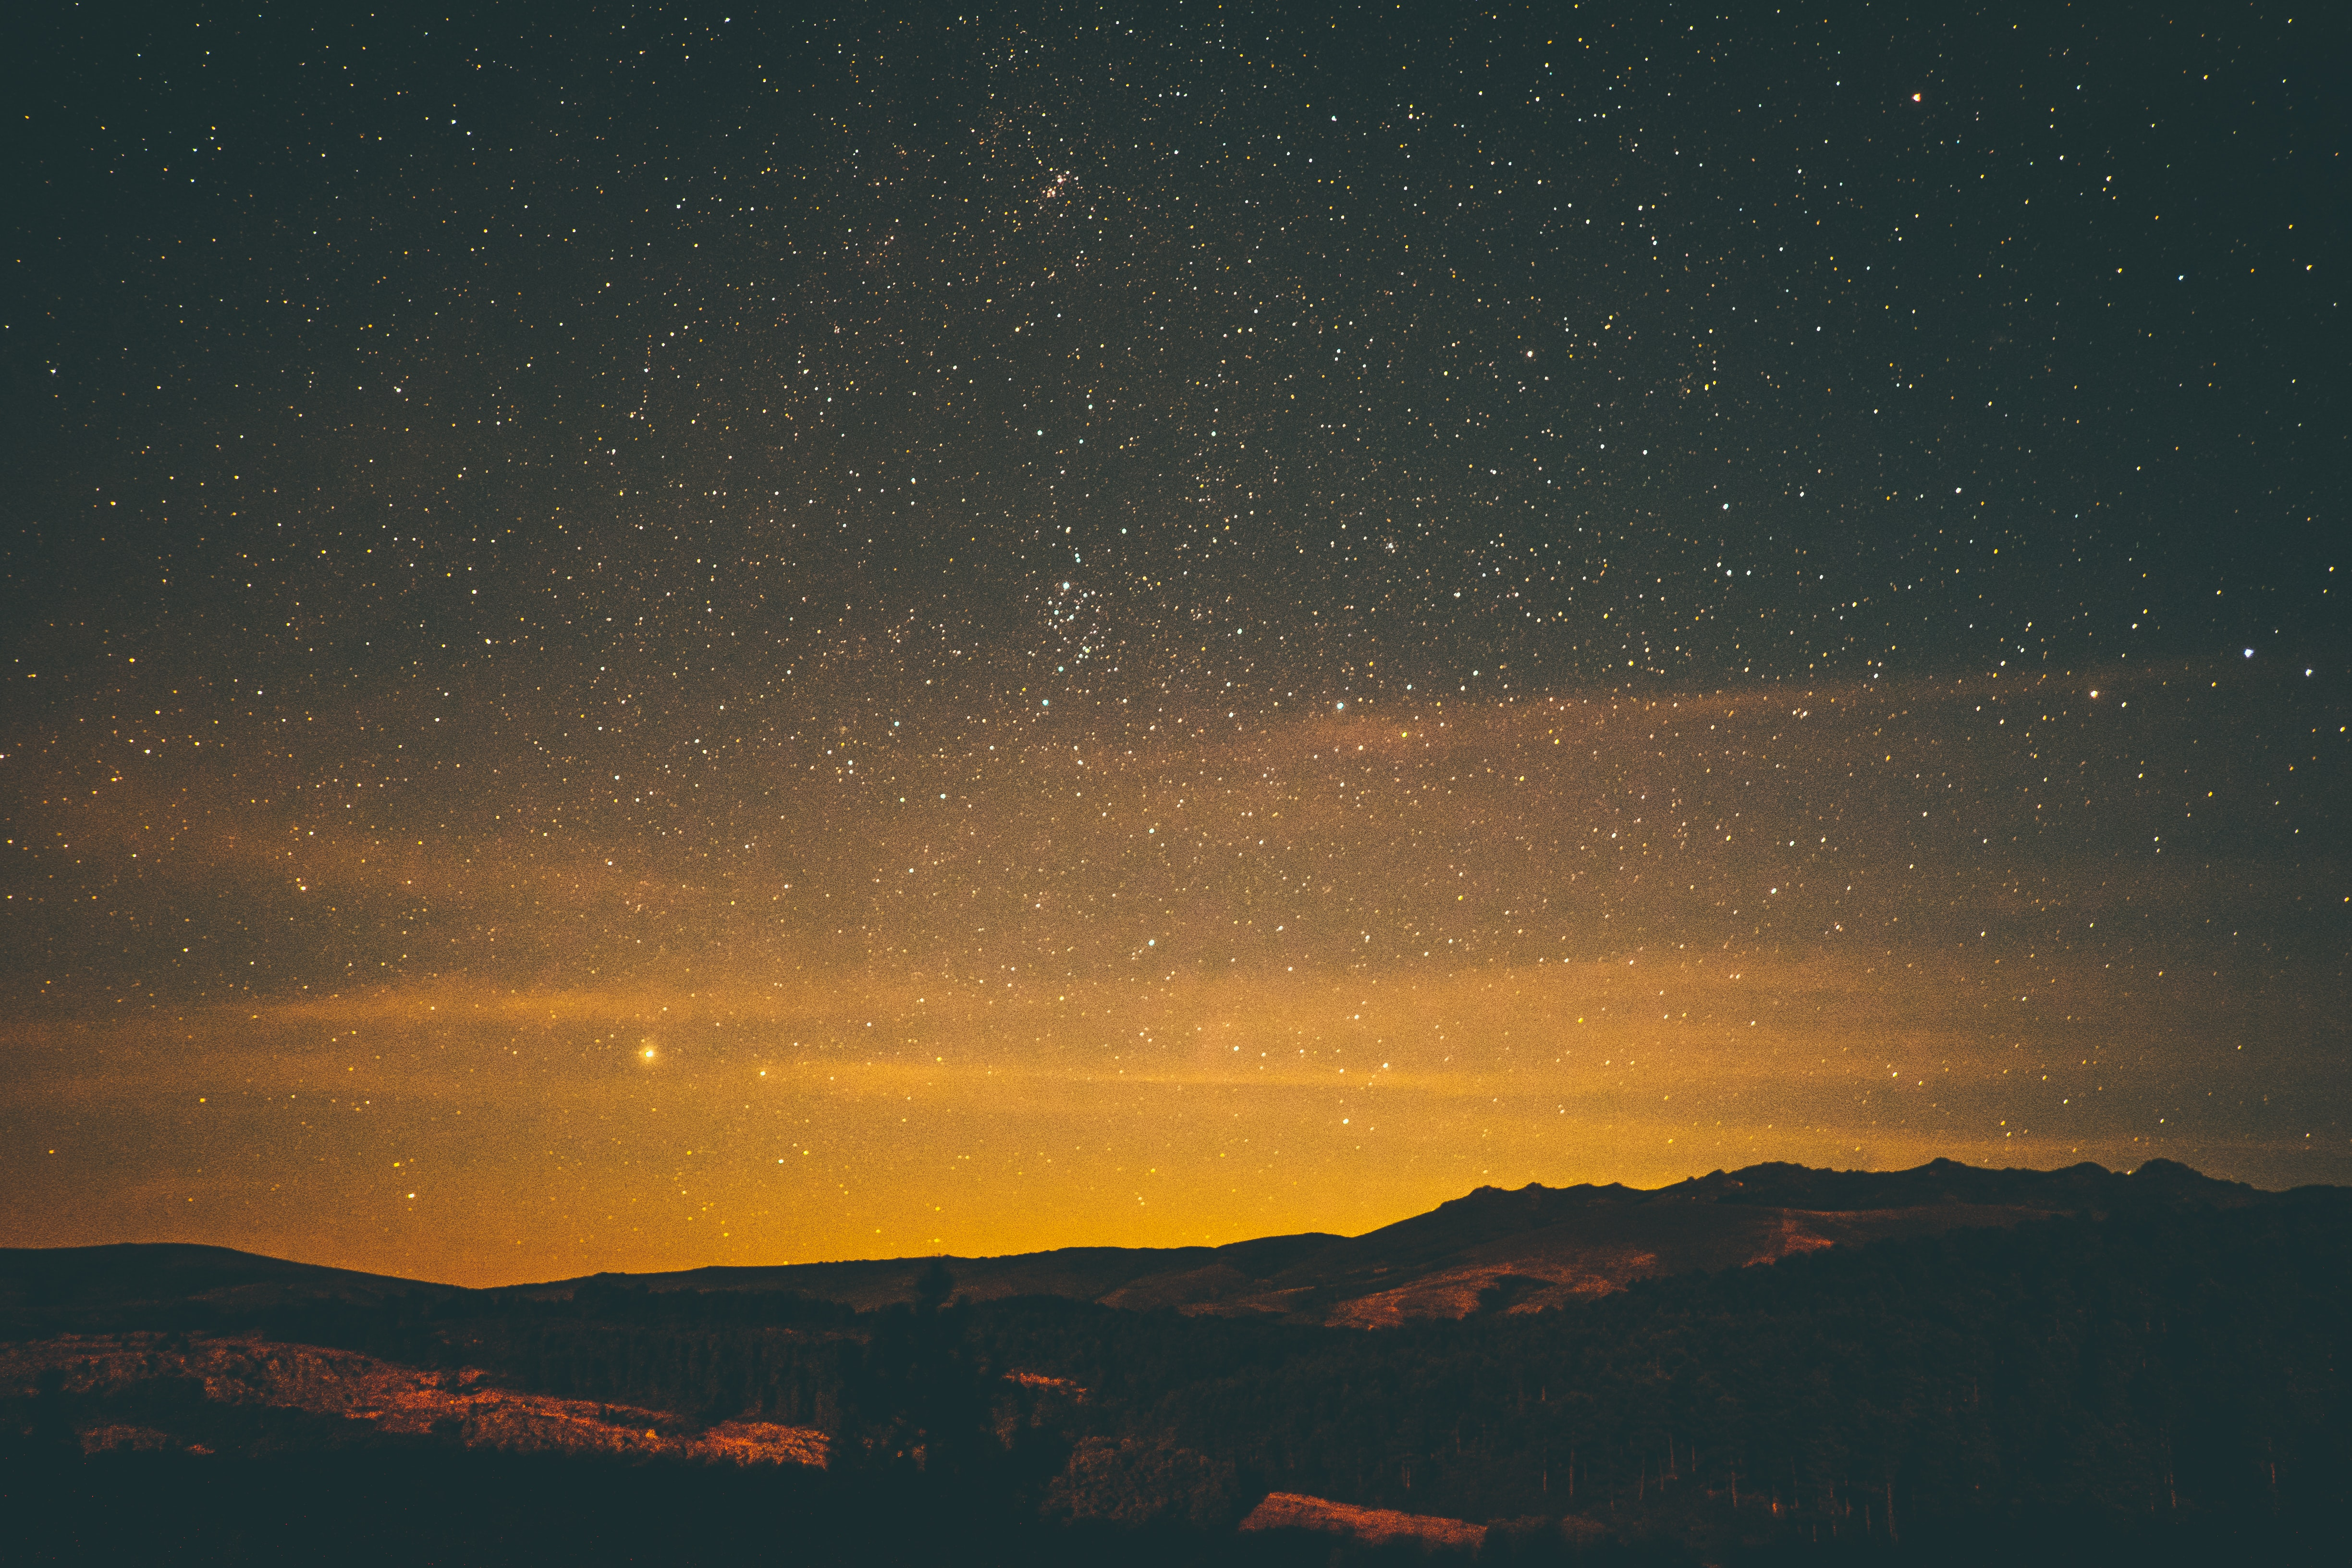 A golden sunset fades into a dark starry night sky over some mountains